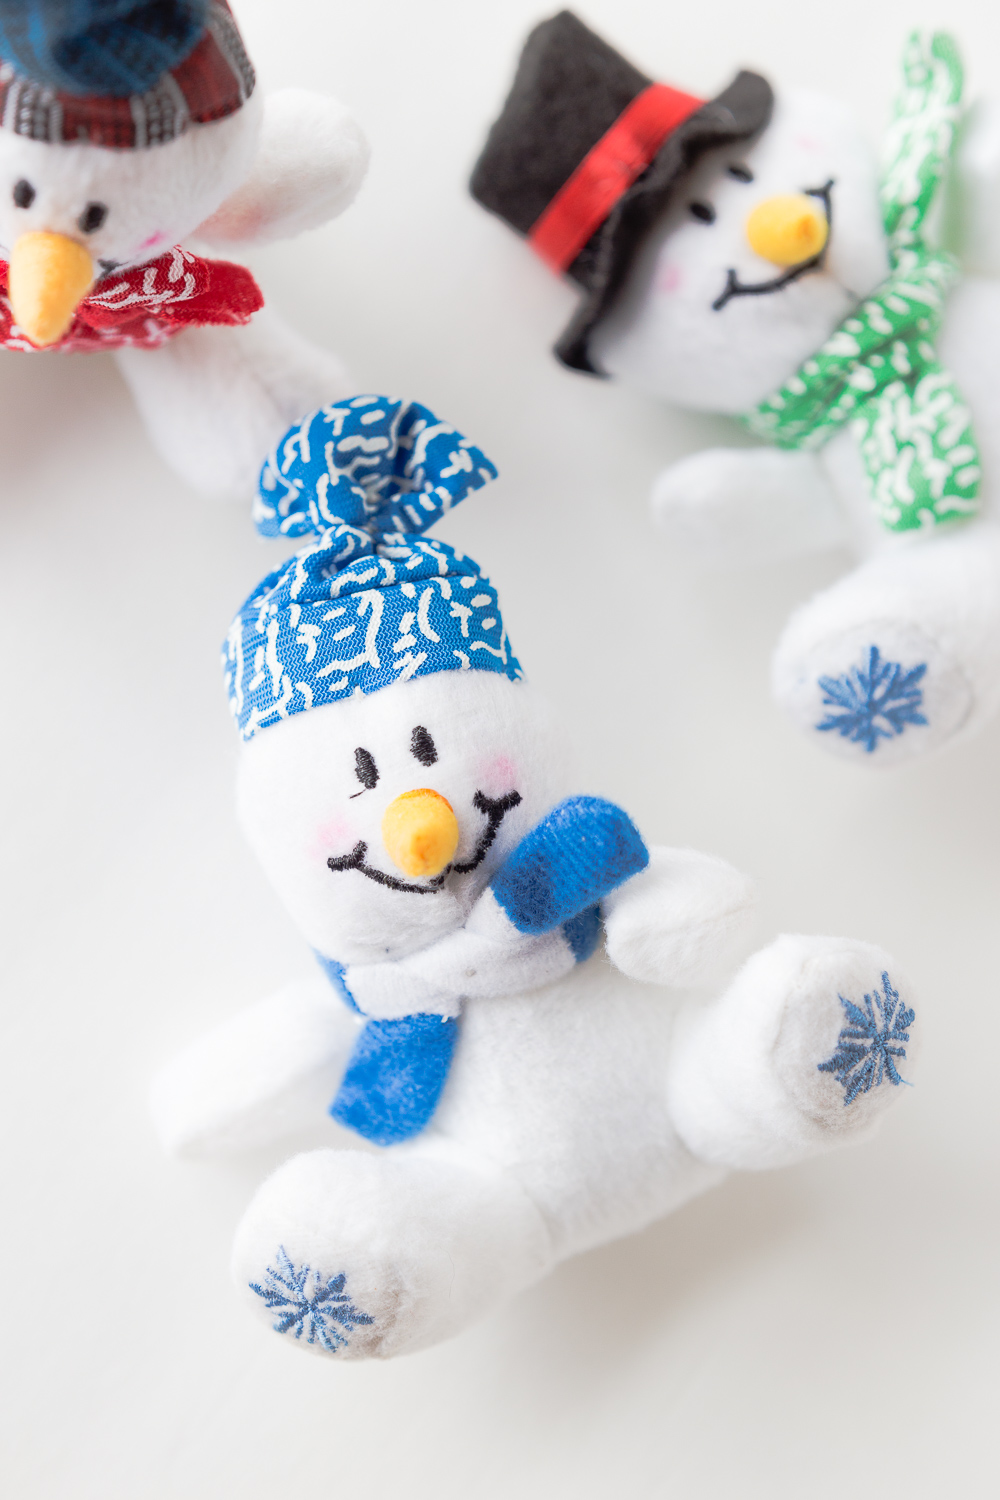 Snowman Craft Box: a little snowman box filled with goodies to help pass the winter day away.